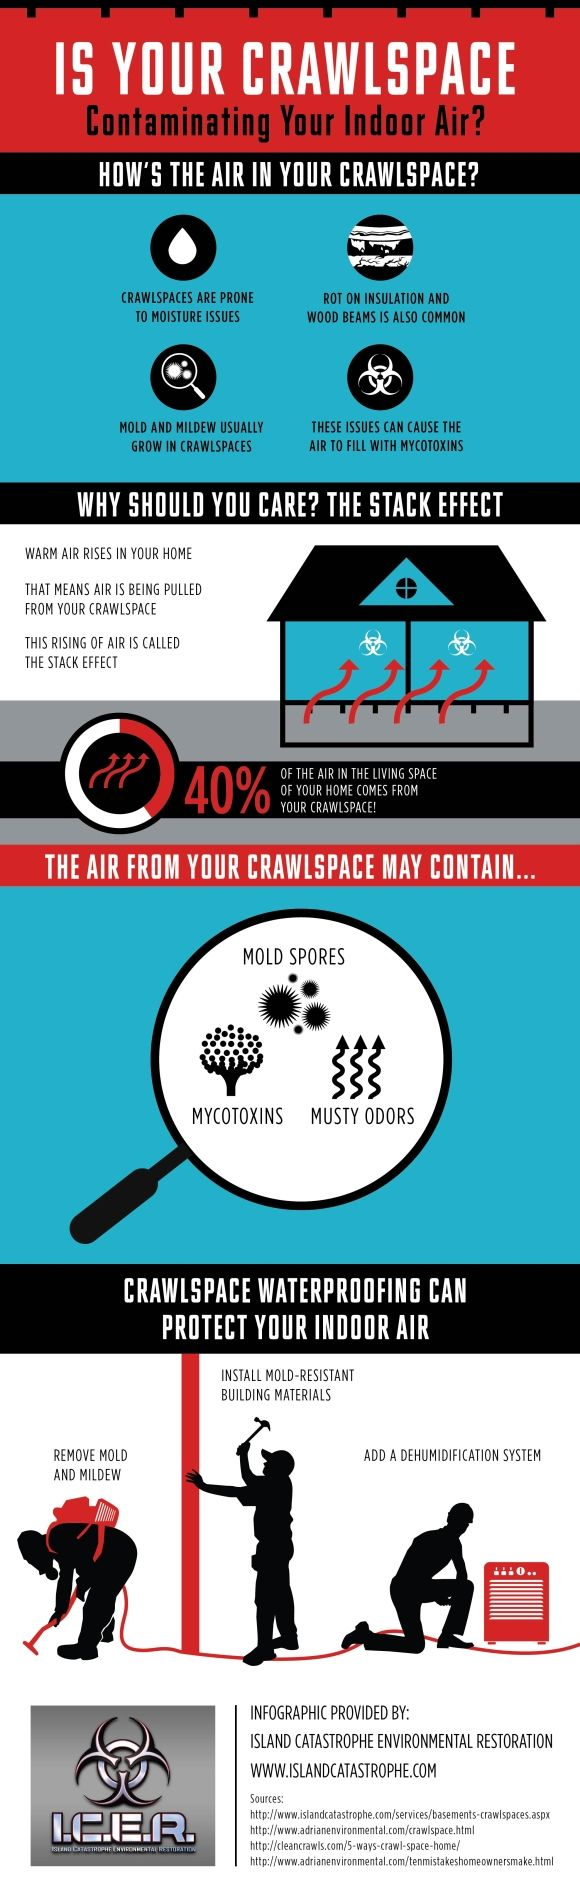 Crawl Space Contaminating Your Indoor Air Infographic Summary